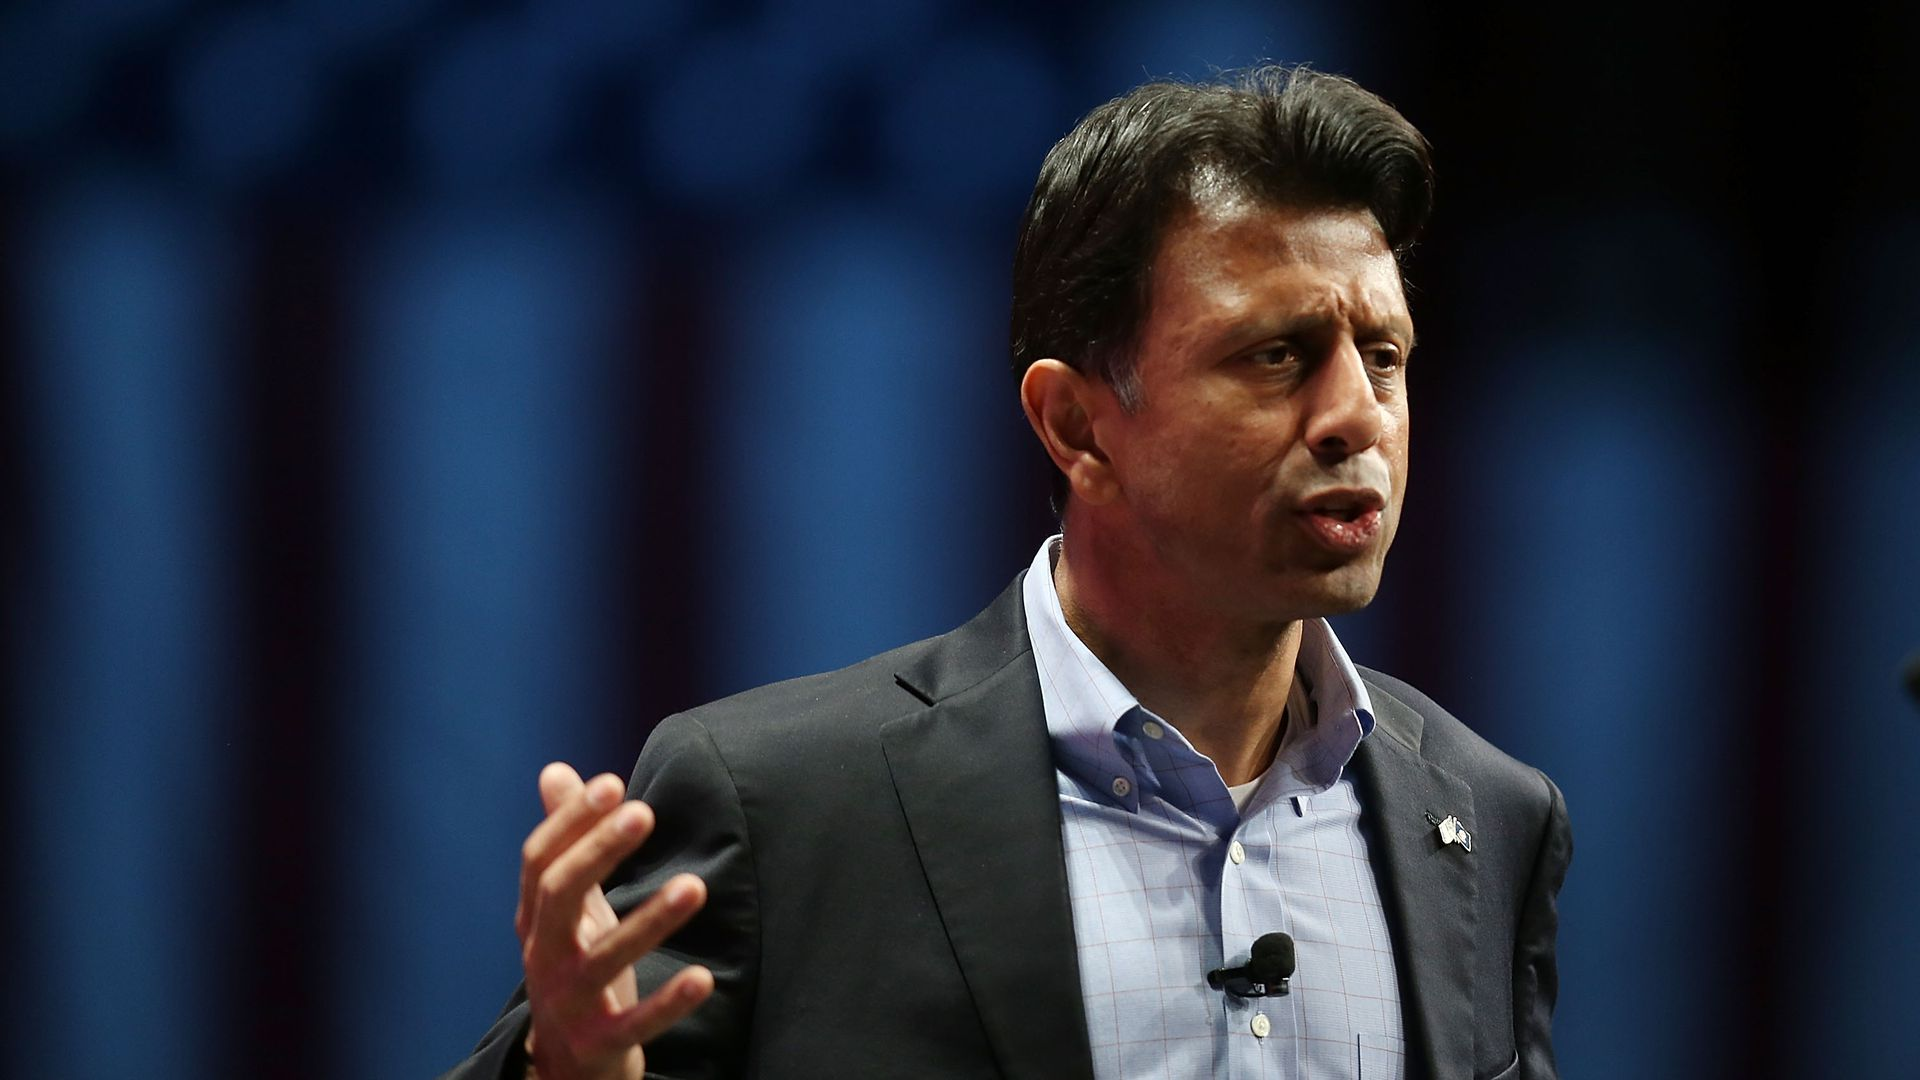 Bobby Jindal speaks during his run as a Republican presidential candidate.